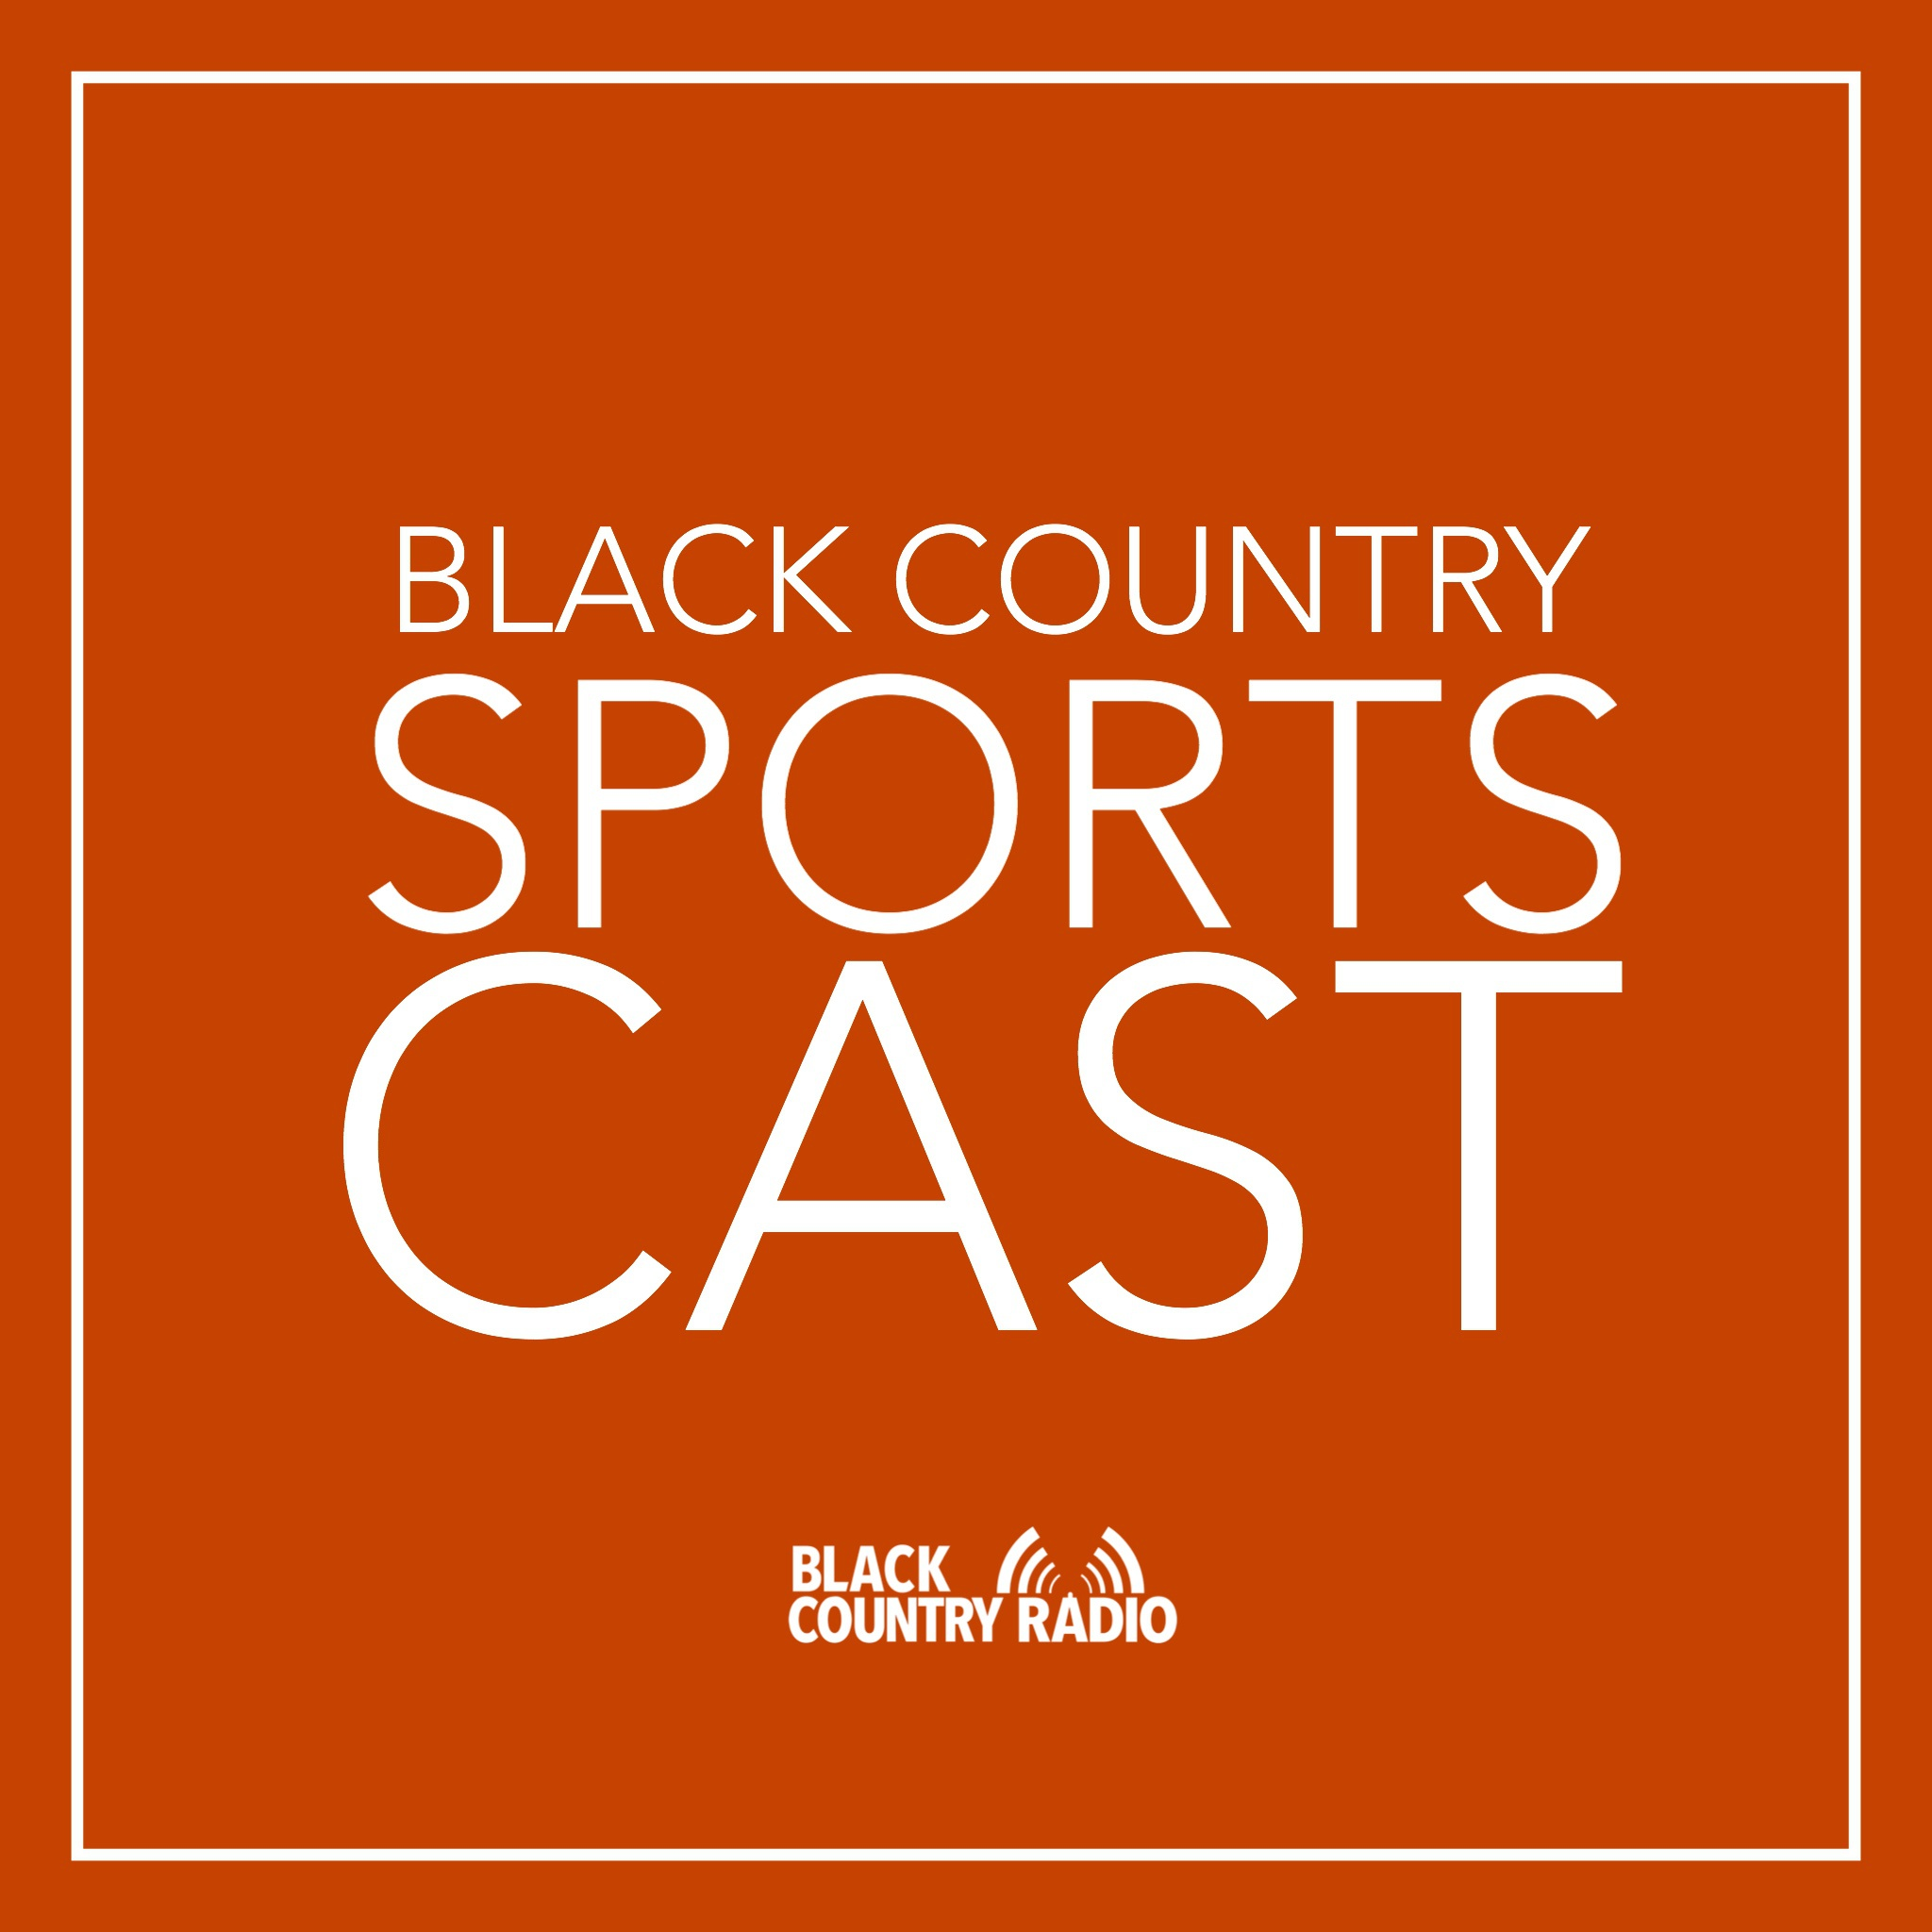 Black Country Sportscast